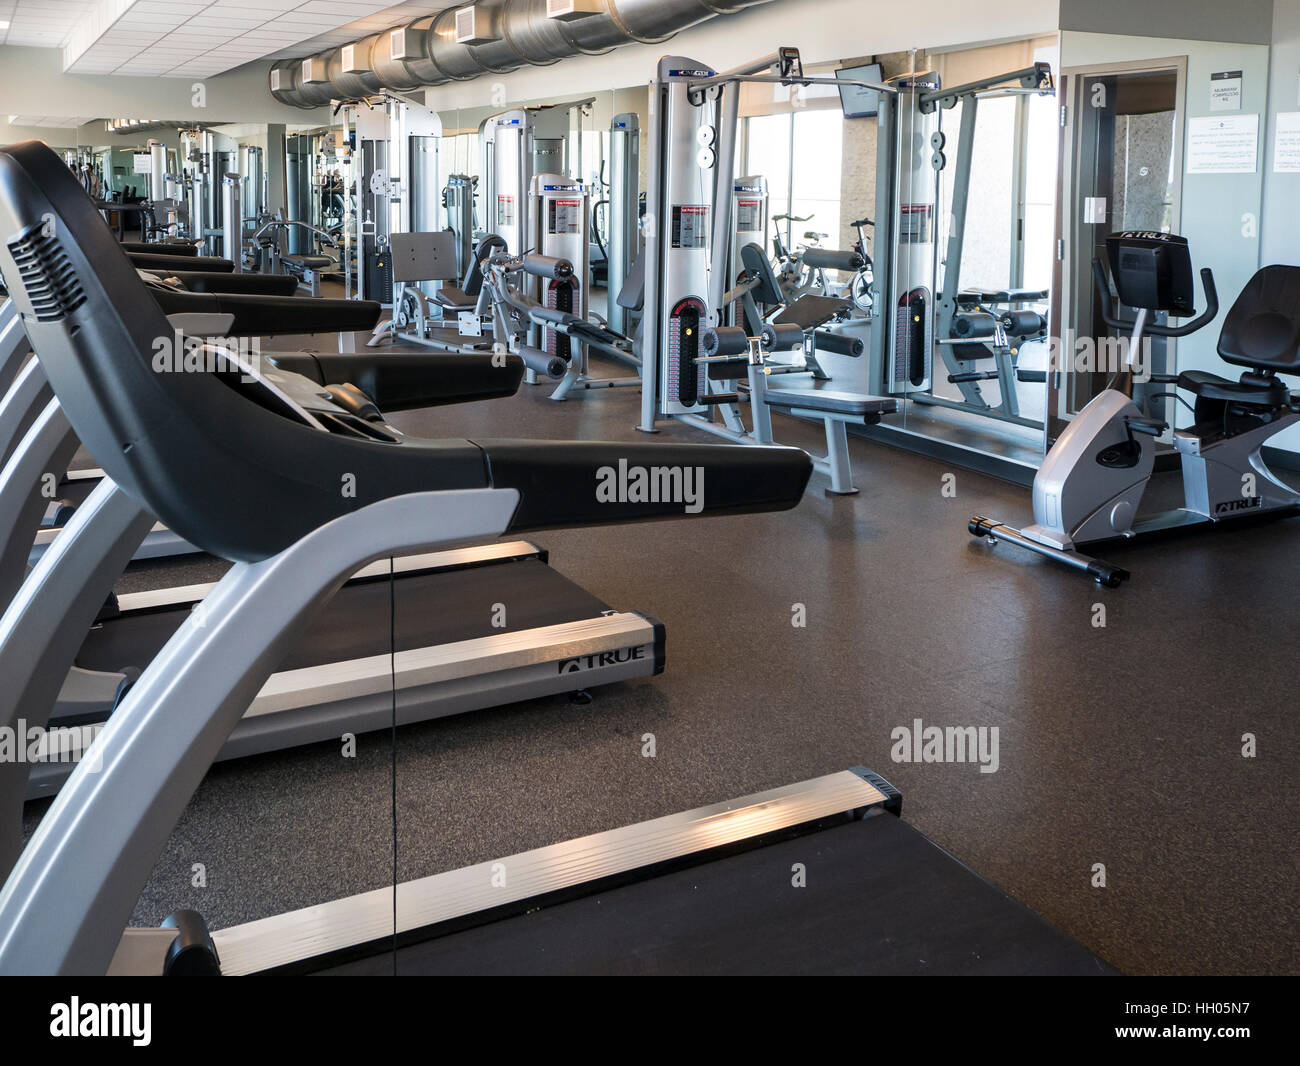 Gimnasio gimnasio, Talking Stick Resort, Scottsdale, Arizona. Imagen De Stock